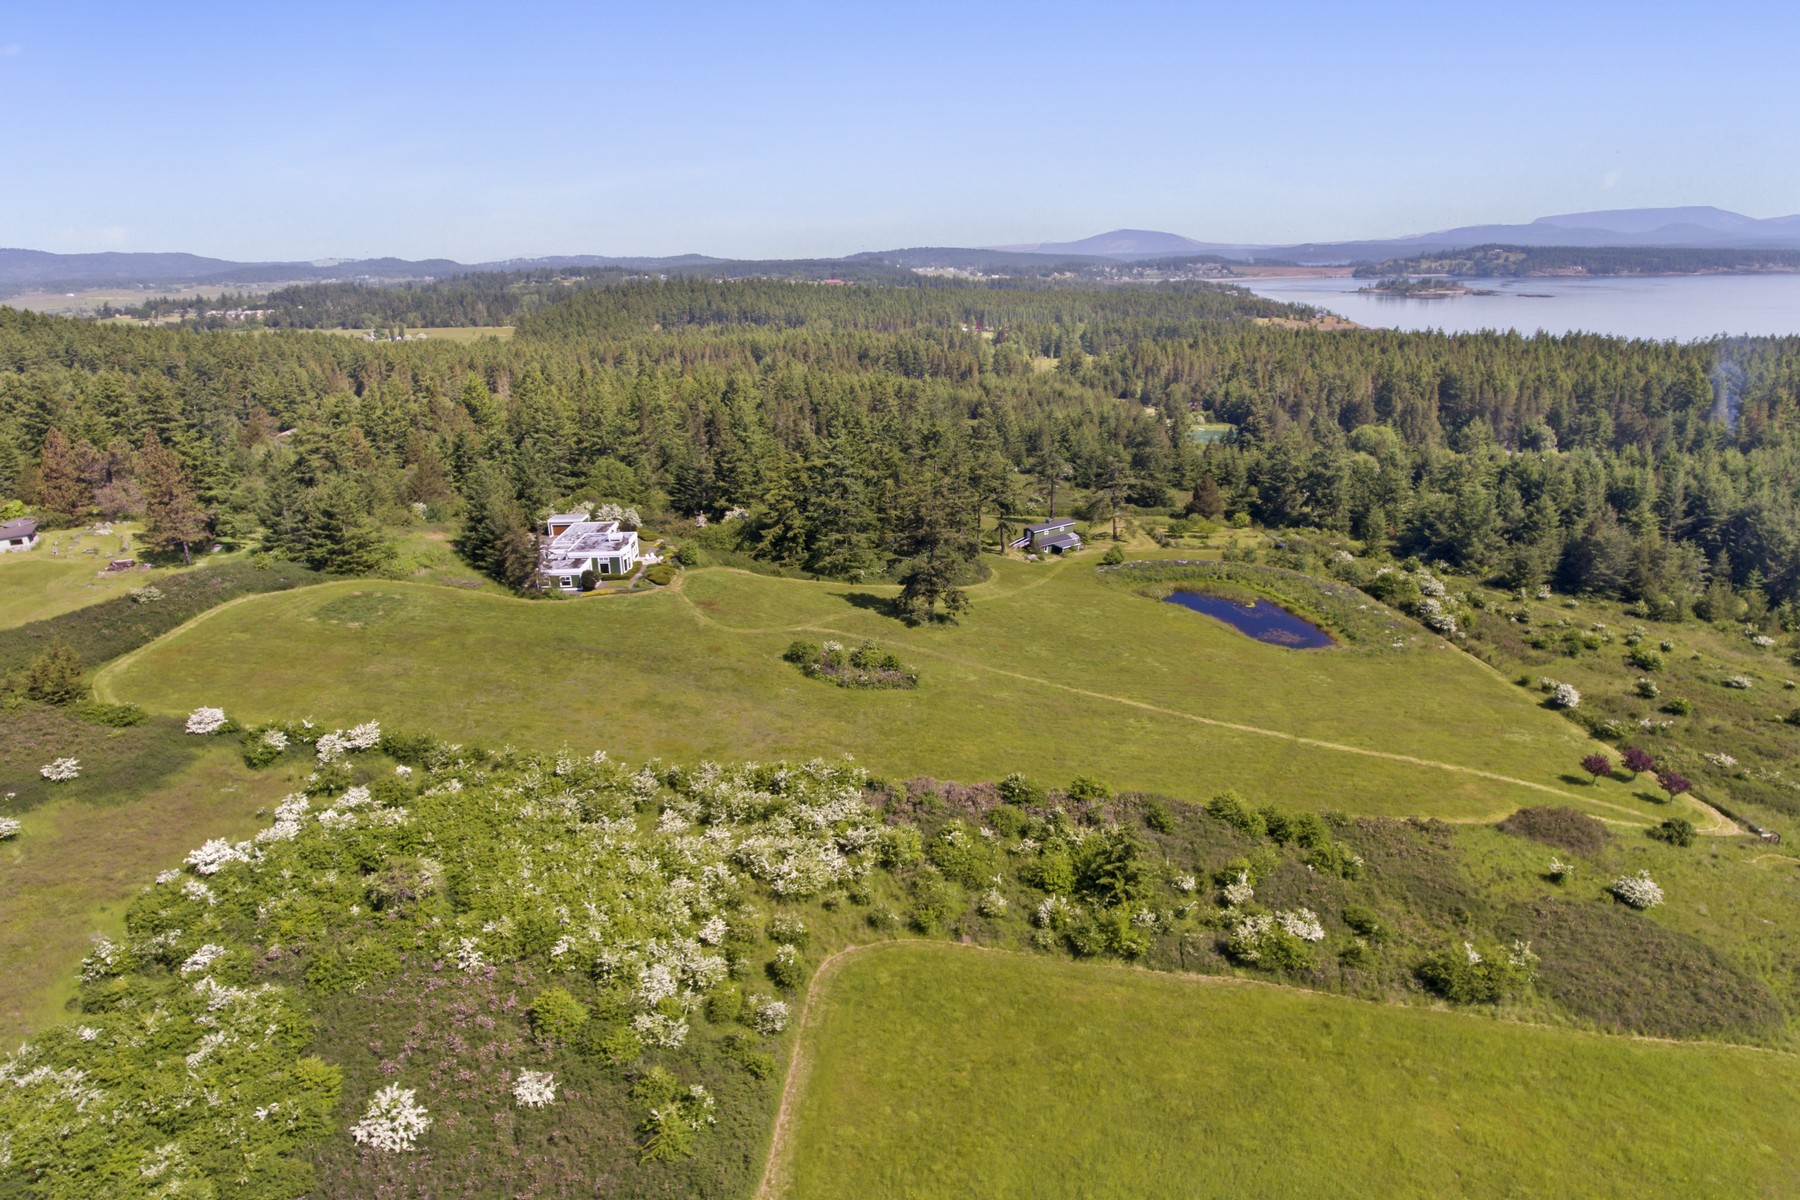 Casa Unifamiliar por un Venta en Spacious Home with Panoramic Views 144 Jensen Bay Road Friday Harbor, Washington, 98250 Estados Unidos